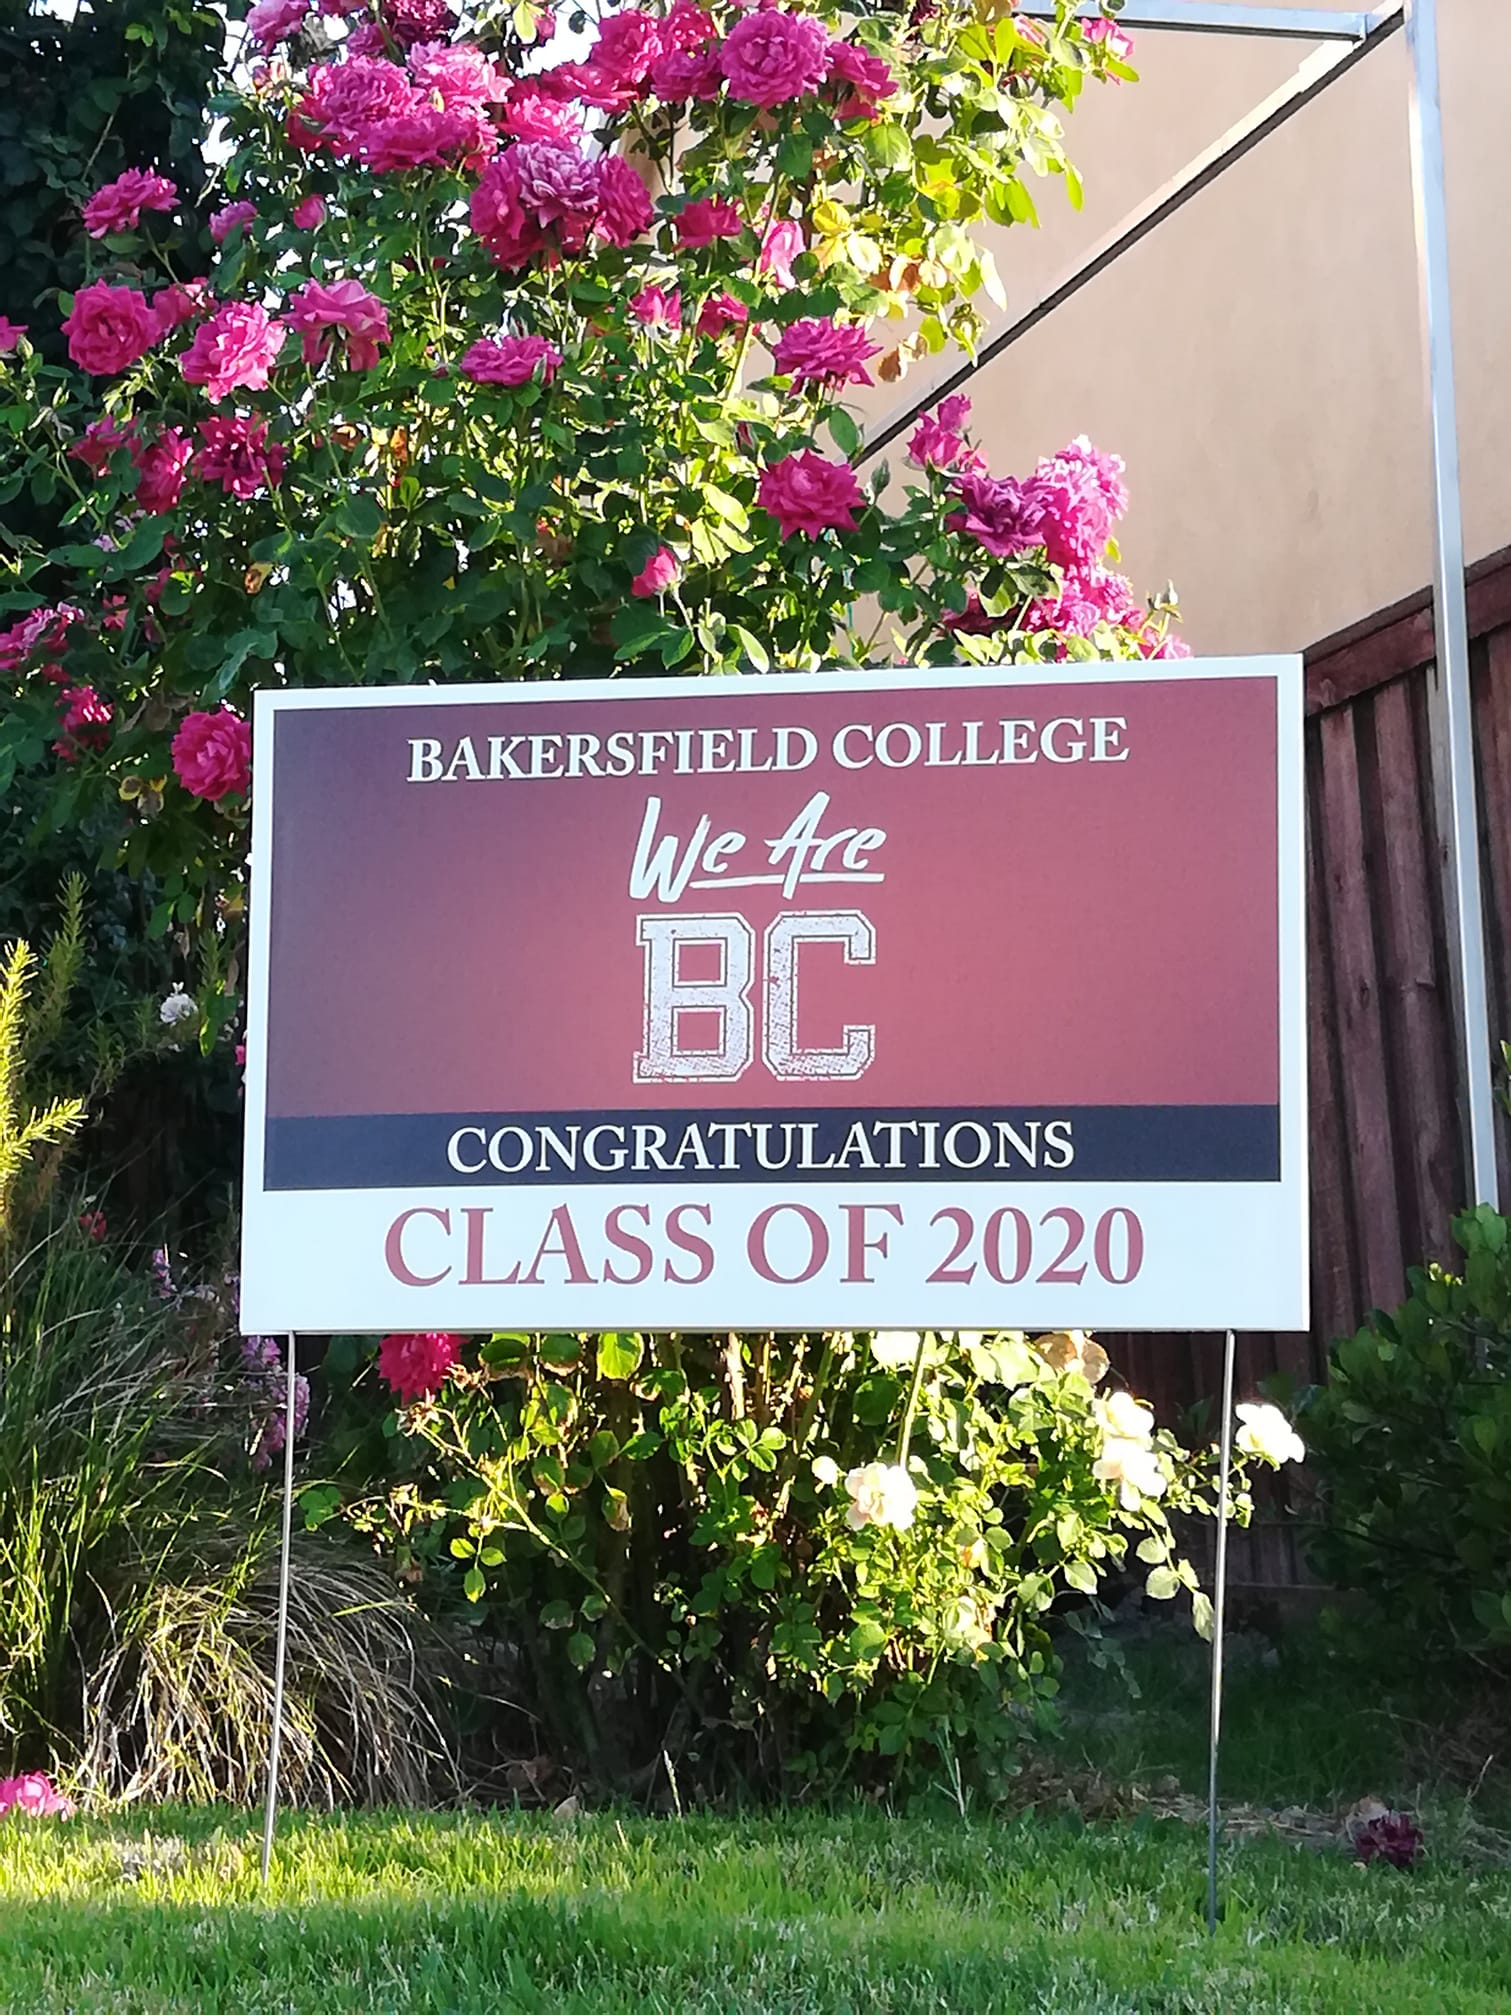 We are BC; Congratulations Class of 2020 sign in front of beautiful flowers.